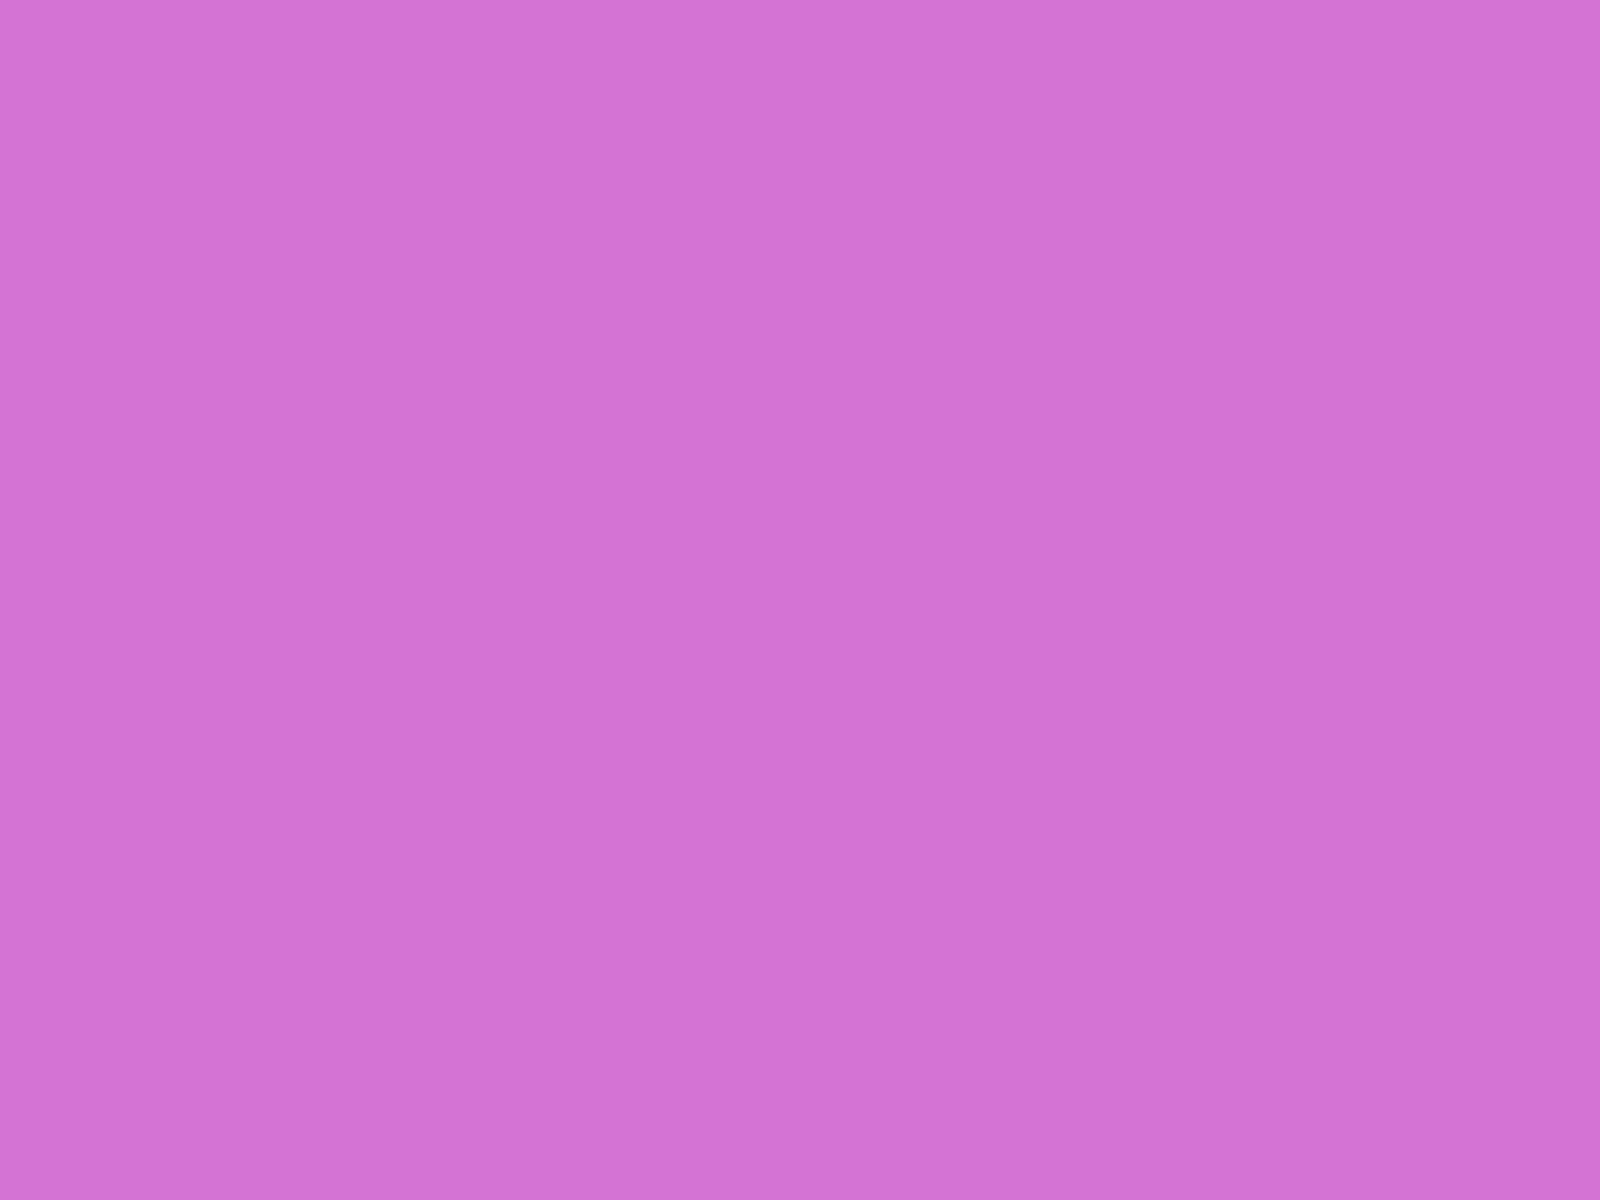 1600x1200 Deep Mauve Solid Color Background